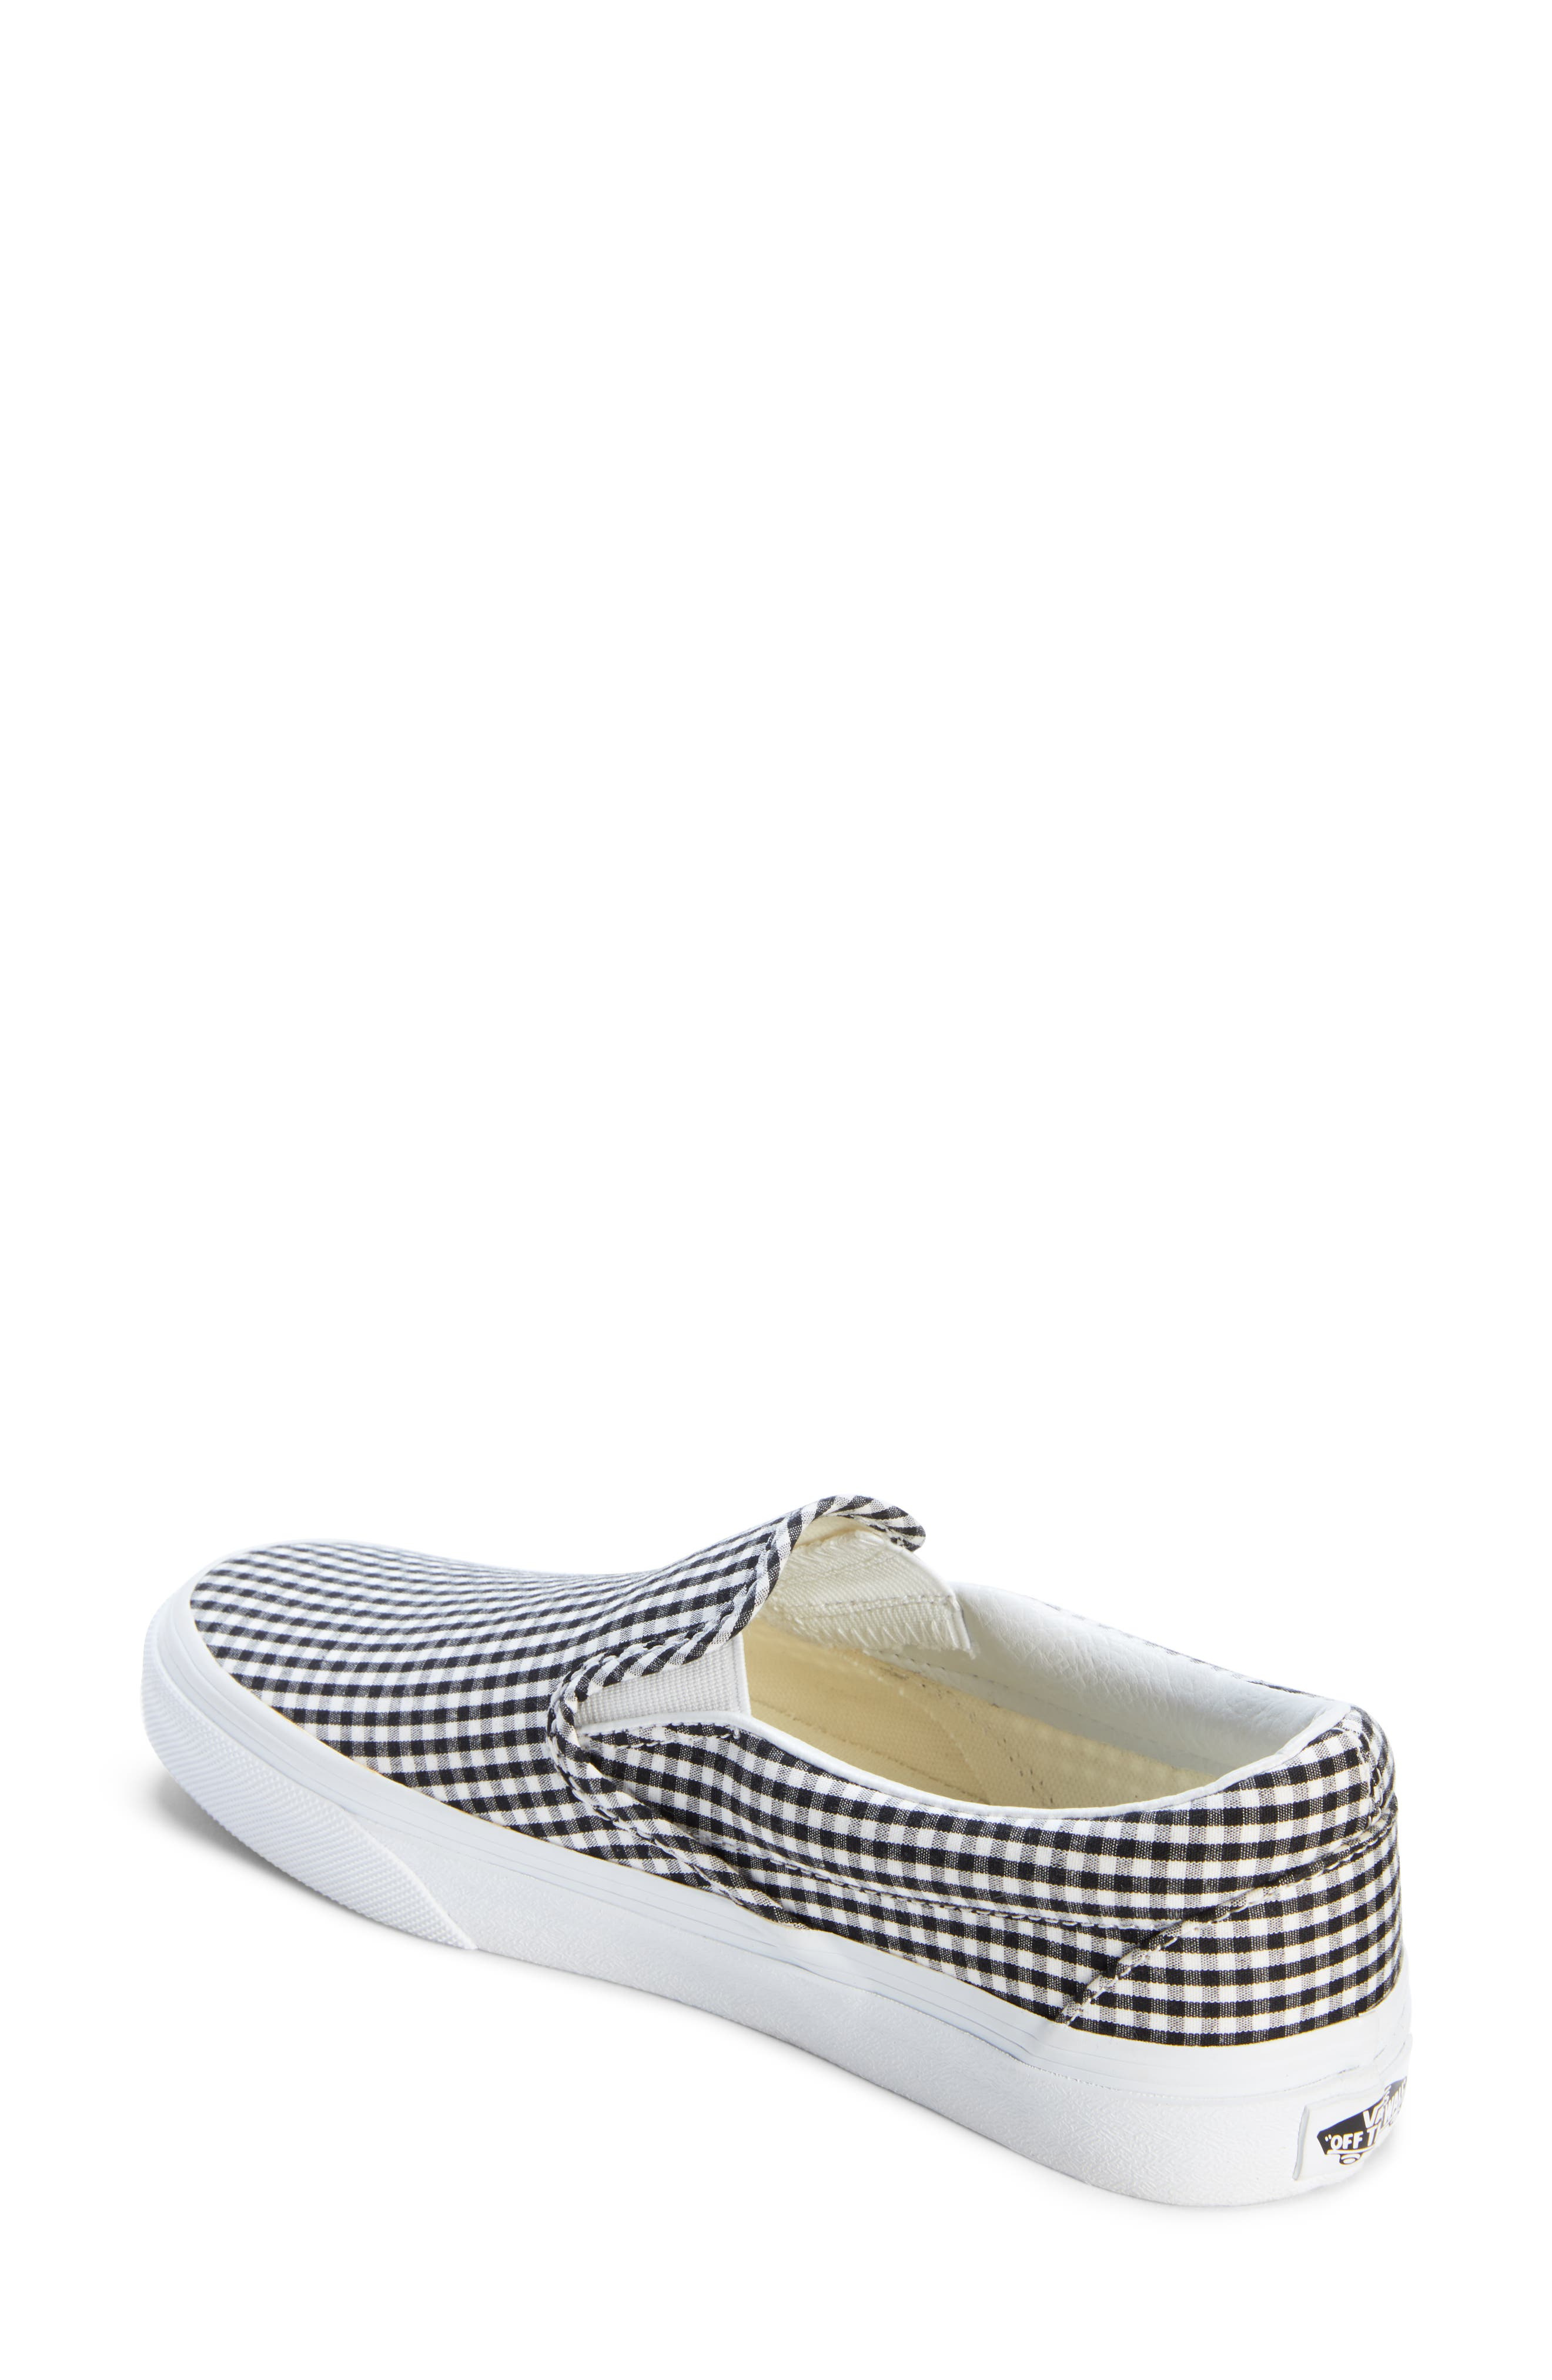 Classic Slip-On Sneaker,                             Alternate thumbnail 2, color,                             Black/ True White Gingham